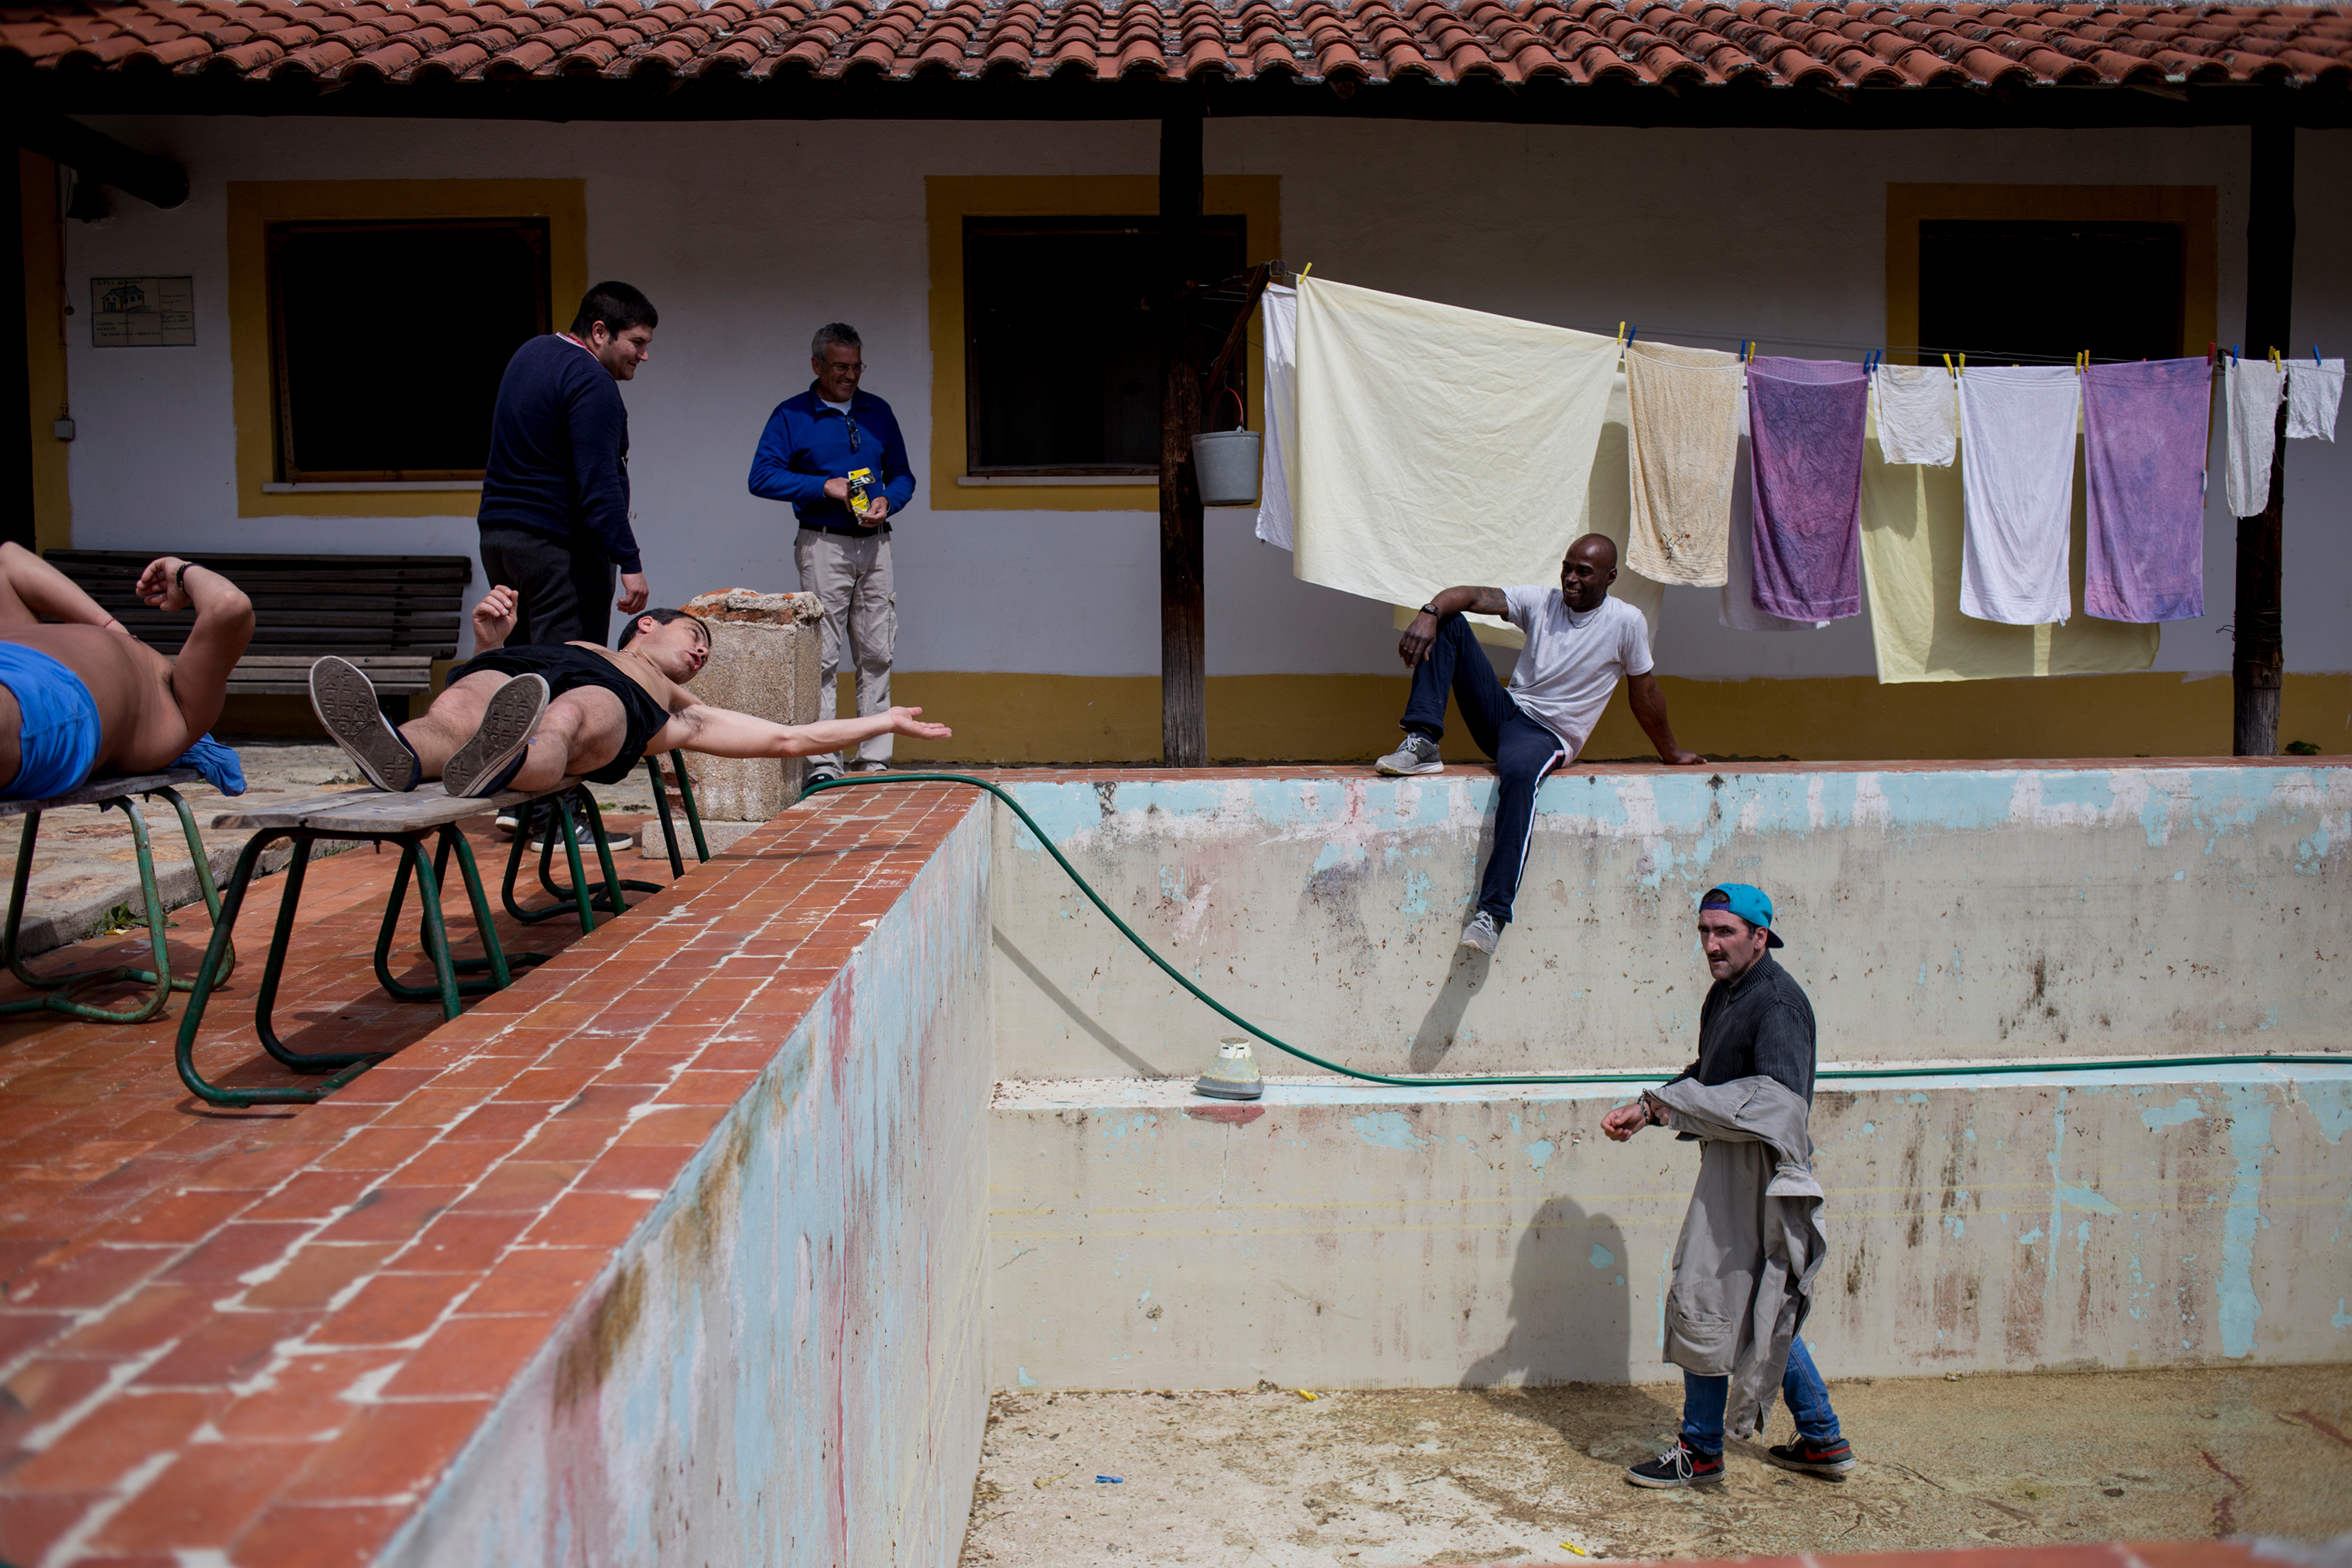 Carlos (right), steps into the swimming pool, which is being renovated, while other patients at Ares do Pinhal Therapeutic Community look on, March 30, 2017.